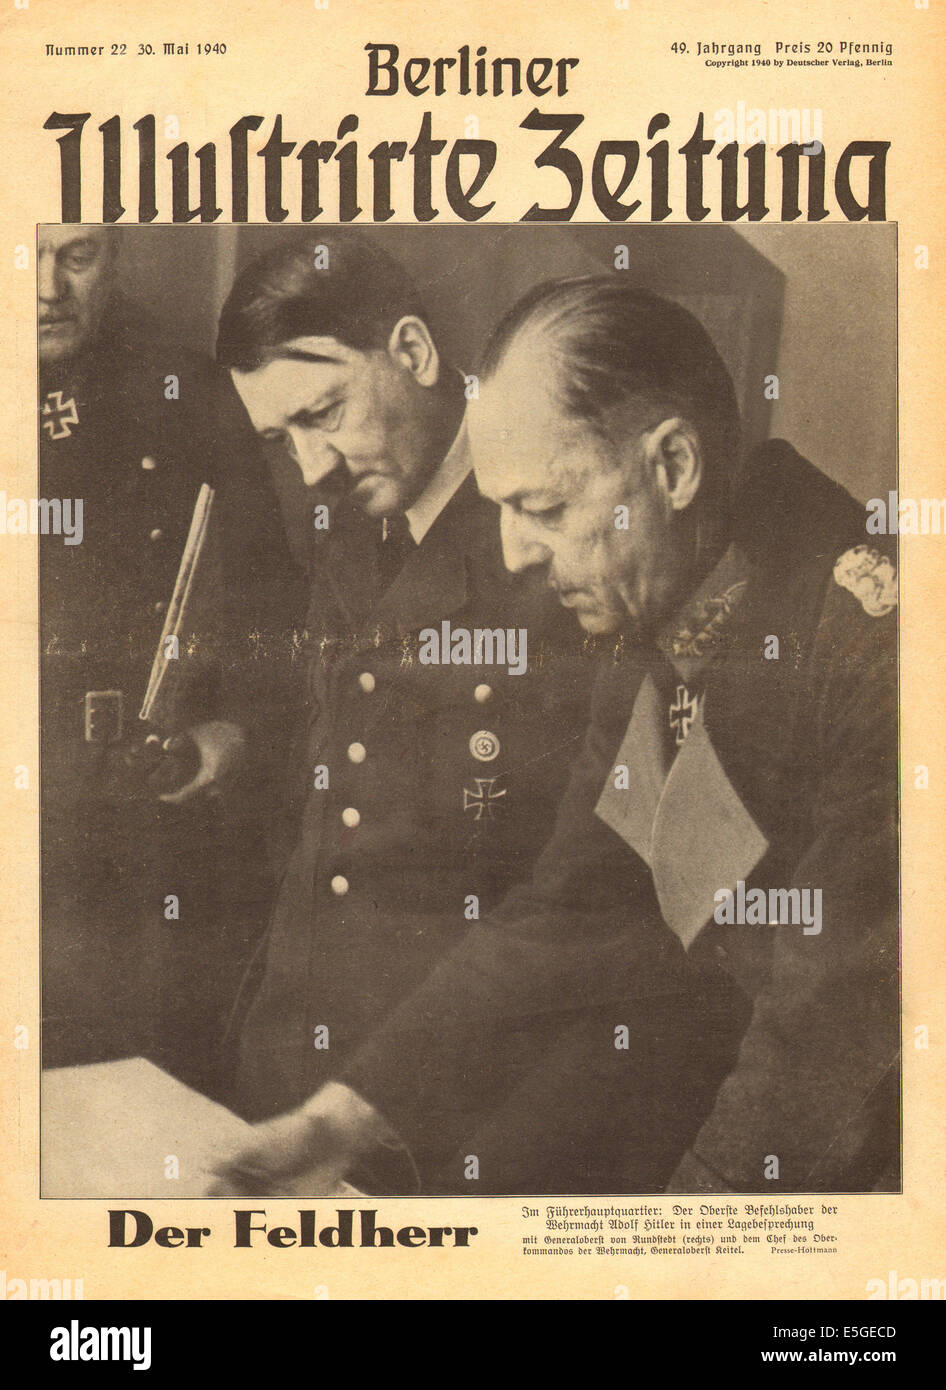 1940 Berliner Illustrierte Zeitung front page reporting Adolf Hitler and General Oberst von Rundstedt discuss military - Stock Image